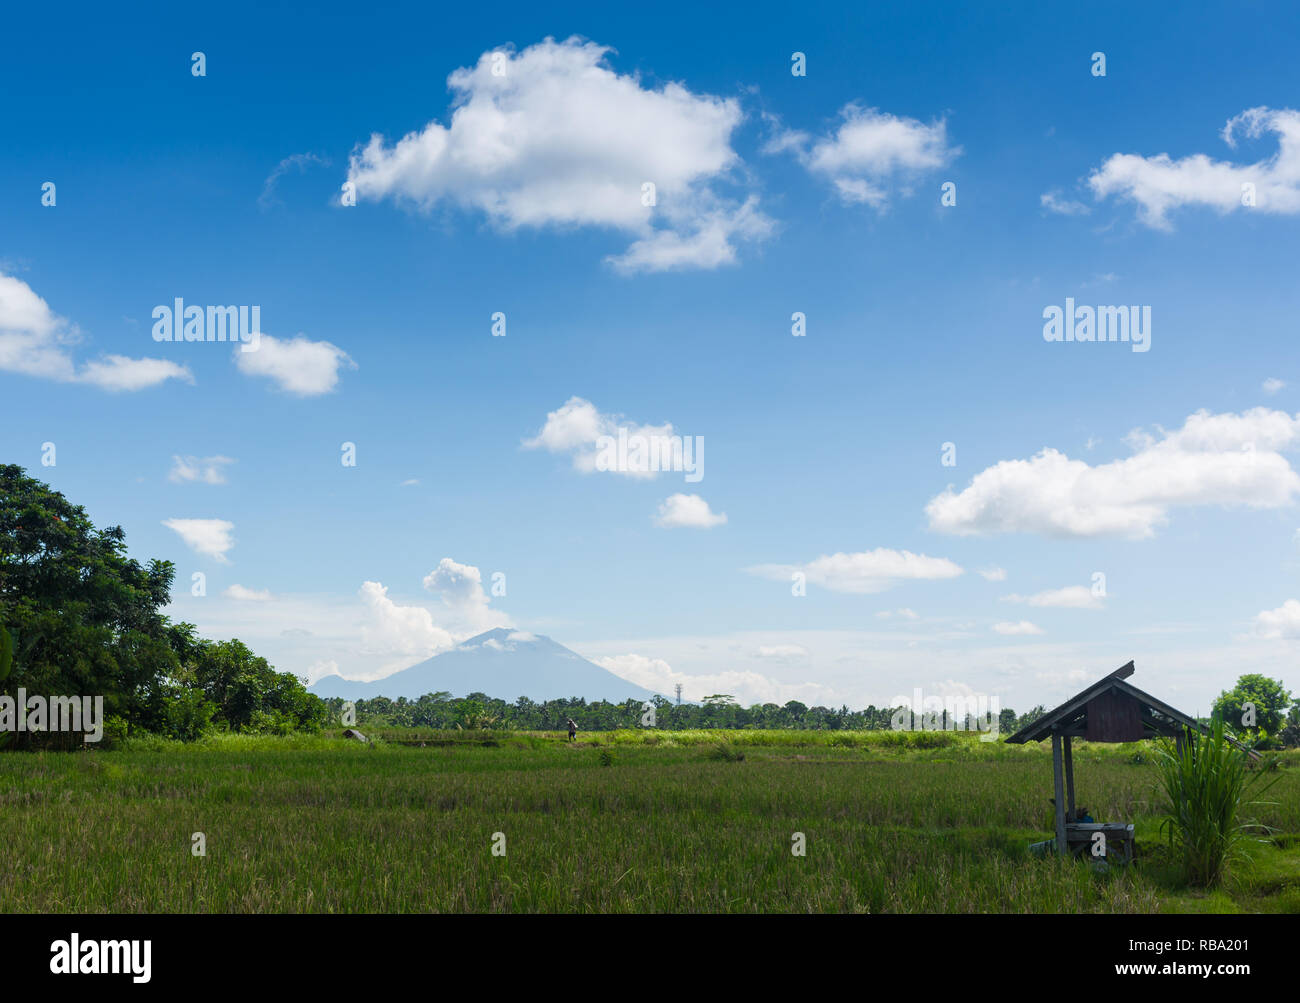 Bicol Province Stock Photos & Bicol Province Stock Images - Alamy